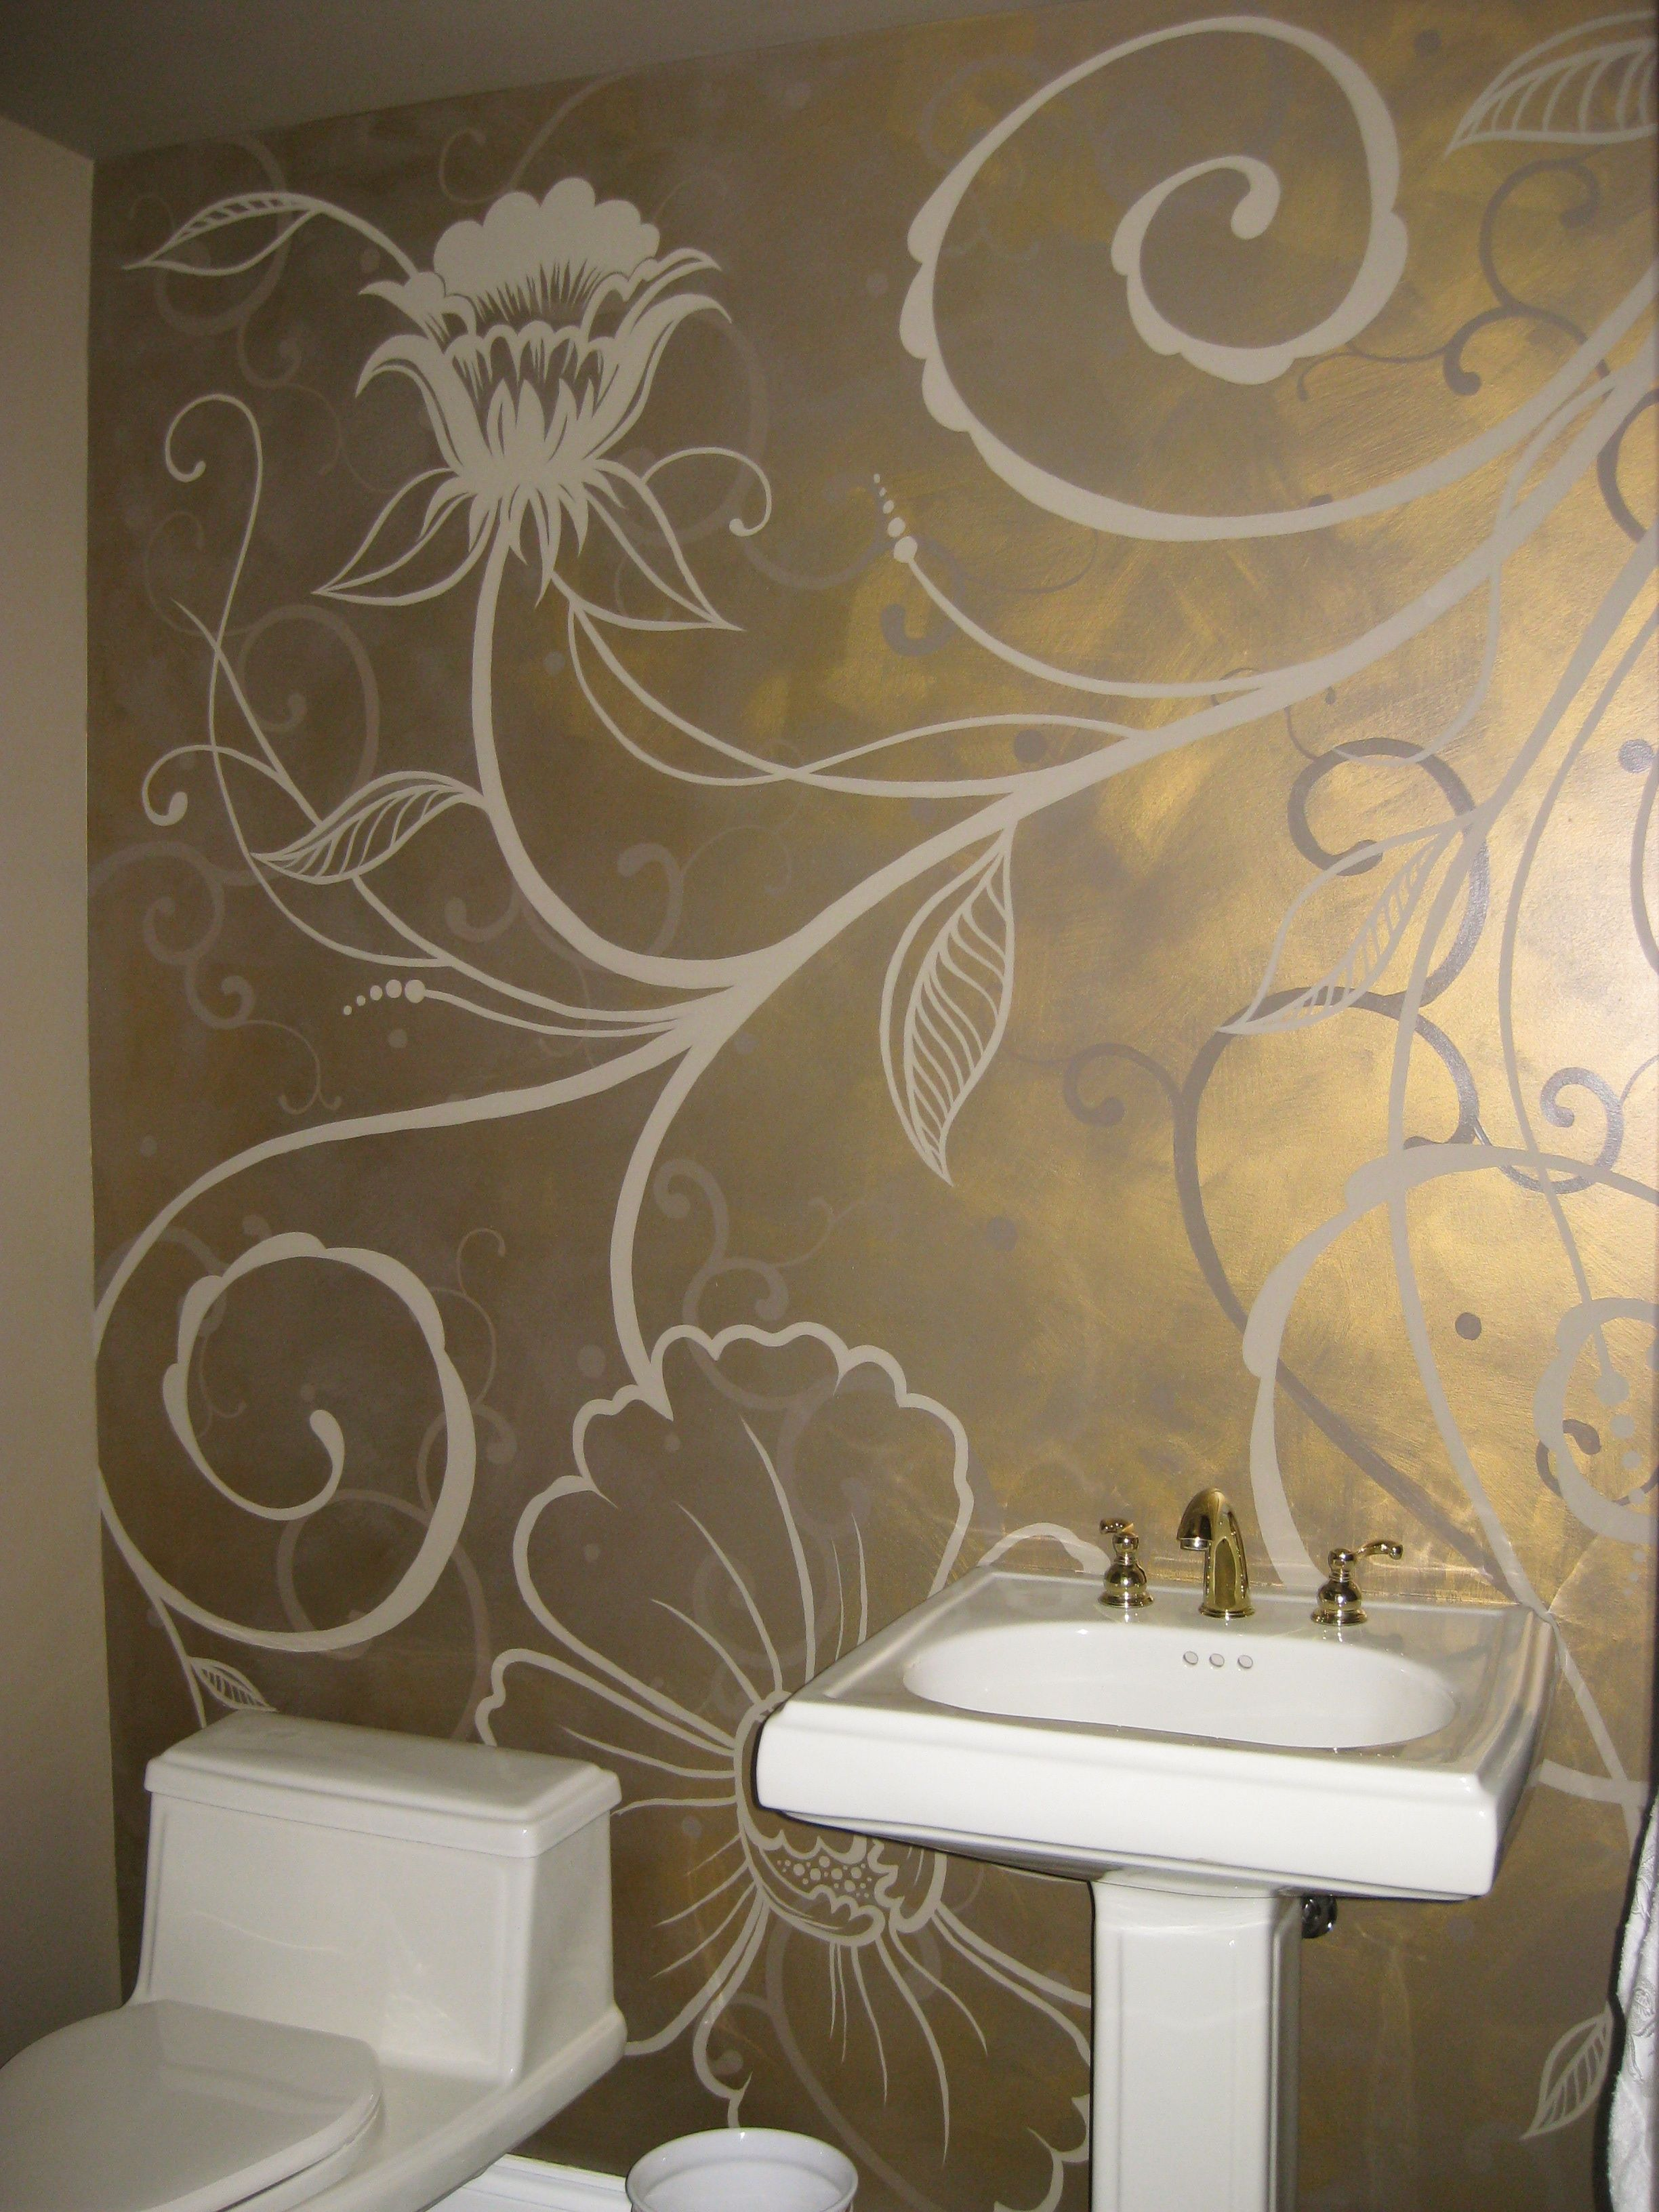 Metallic Br Glazed Wall With Flat Taupe Hand Painted Fl Pattern In A Main Floor Powder Room Custom Interior Design By Mimi Gerow